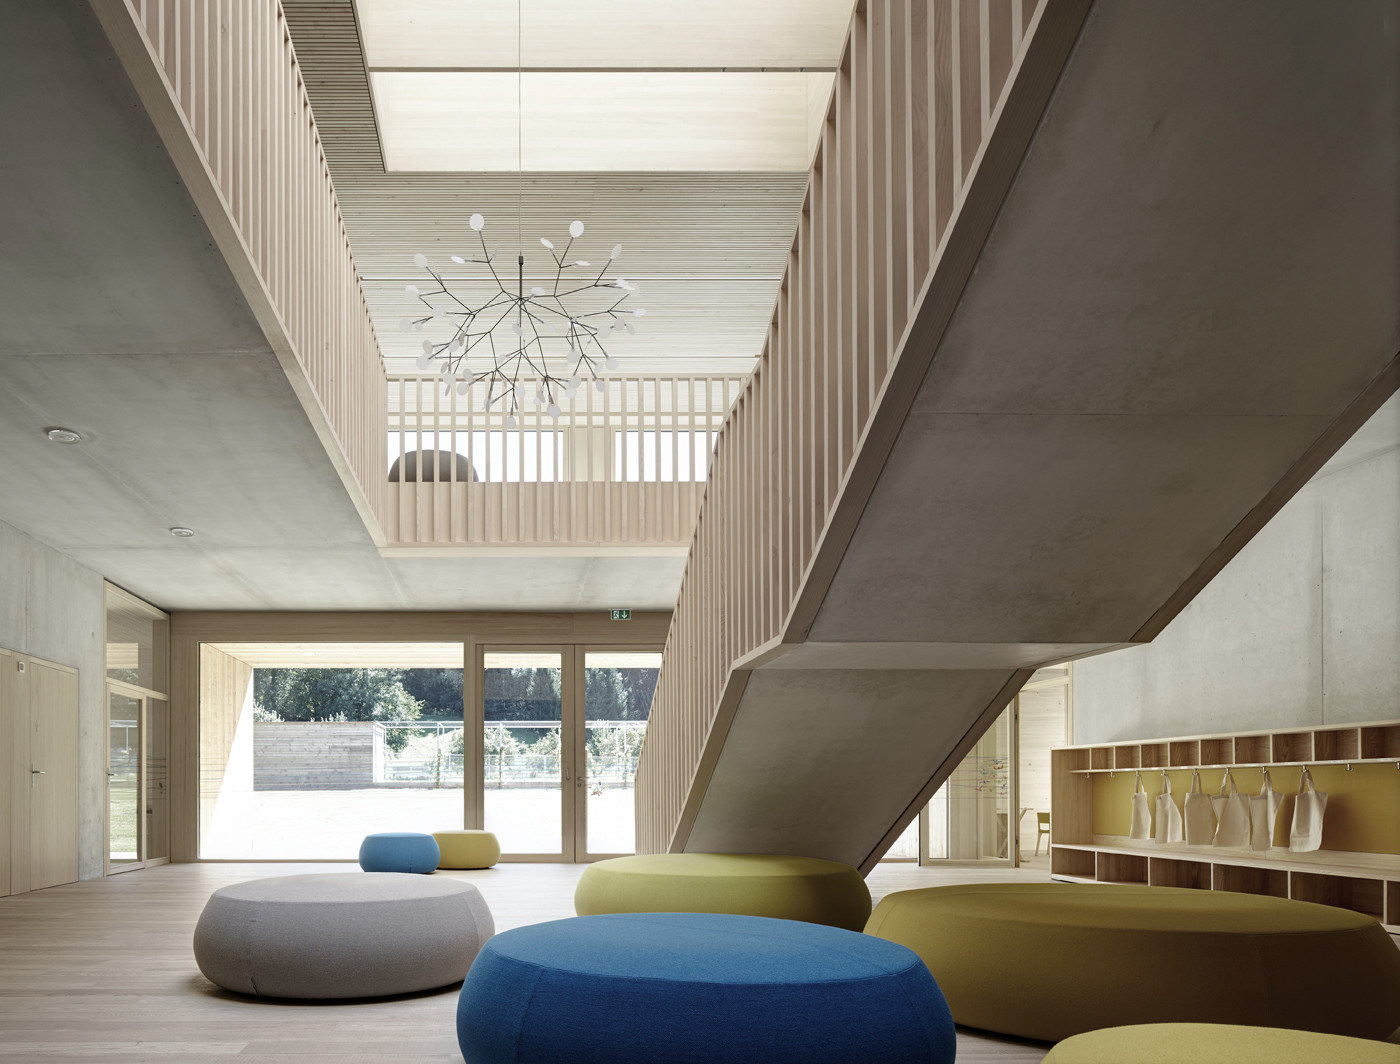 Kindergarten Susi Weigel by Bernardo Bader Architekten